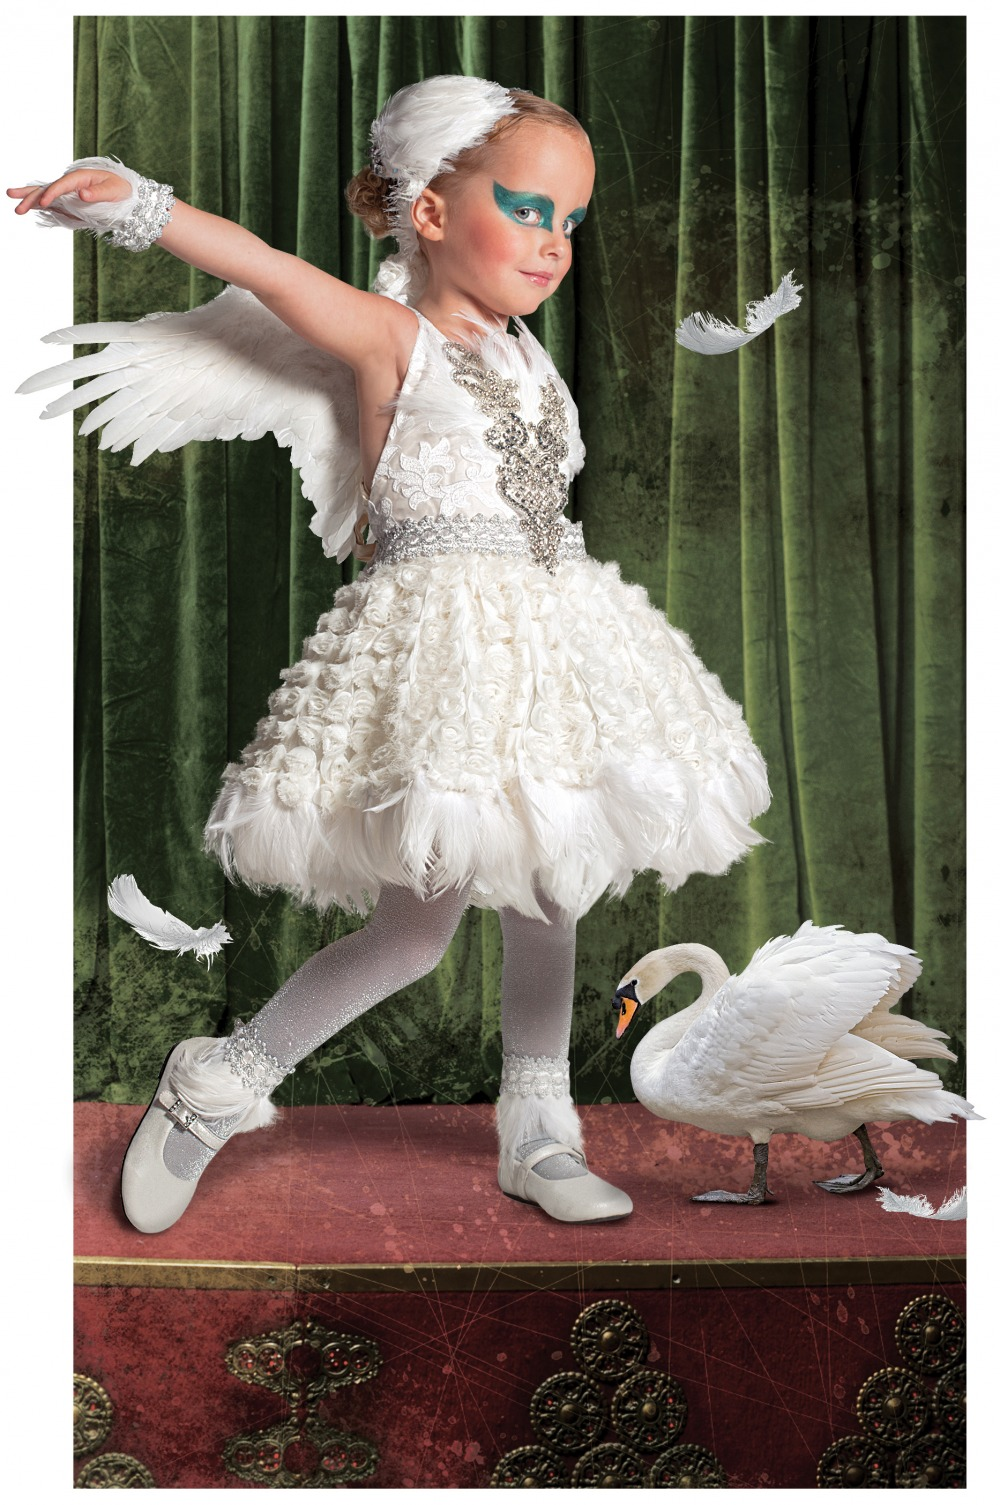 Shop for girls white swan costume online at Target. Free shipping on purchases over $35 and save 5% every day with your Target REDcard.